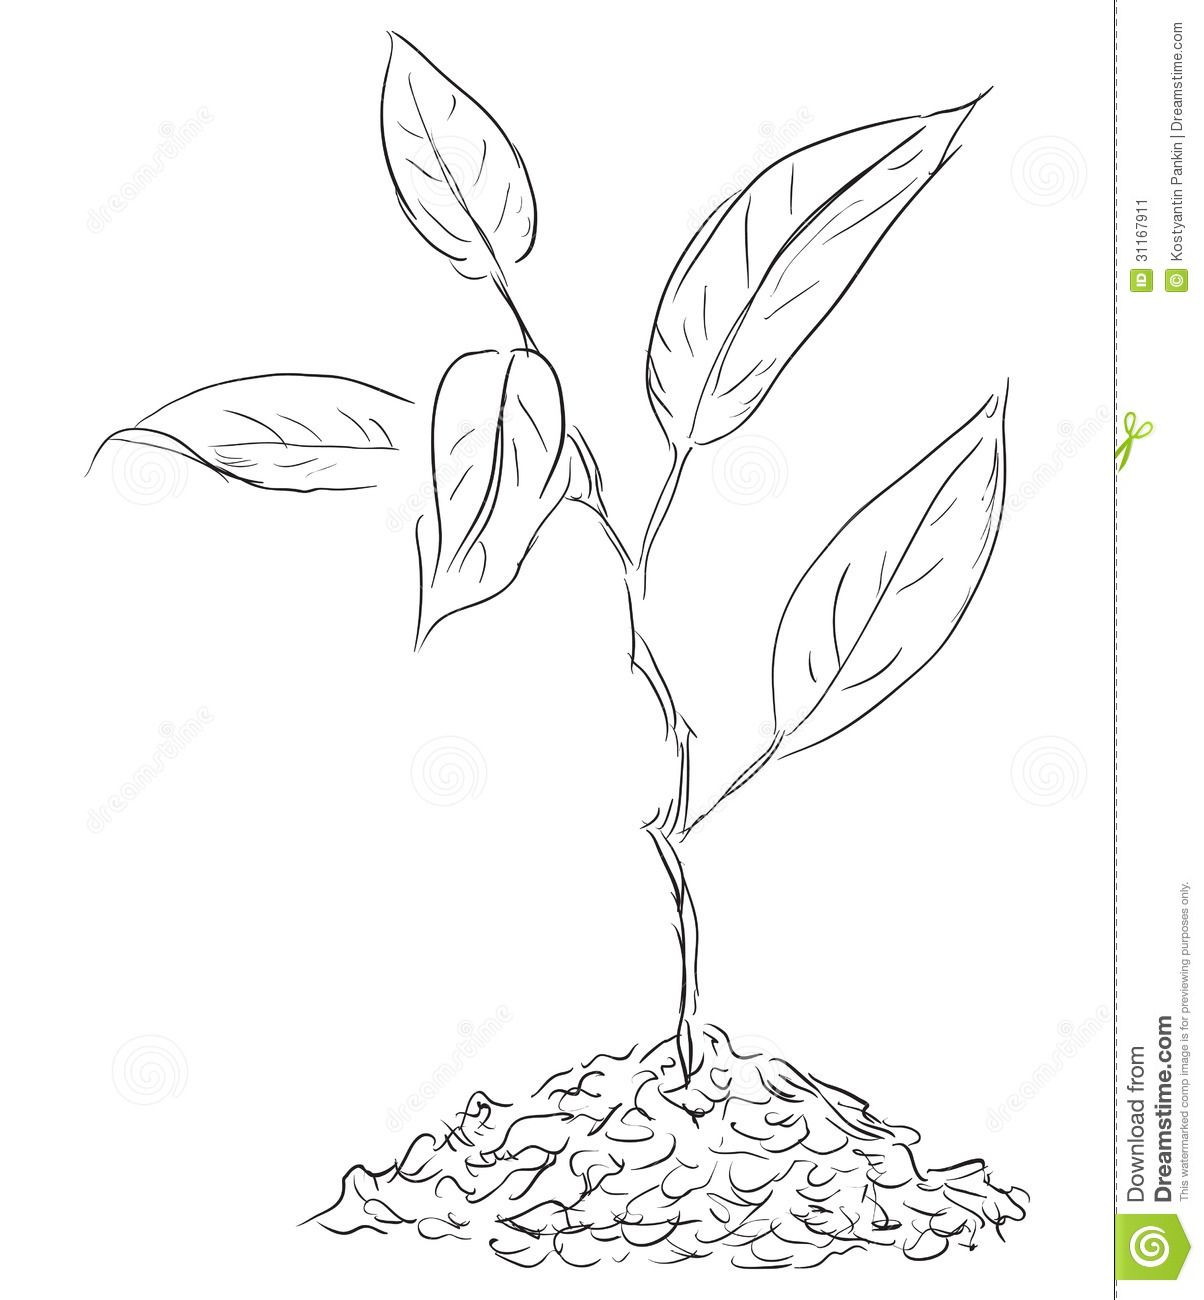 image Sprout drawing. Plant google search paddle